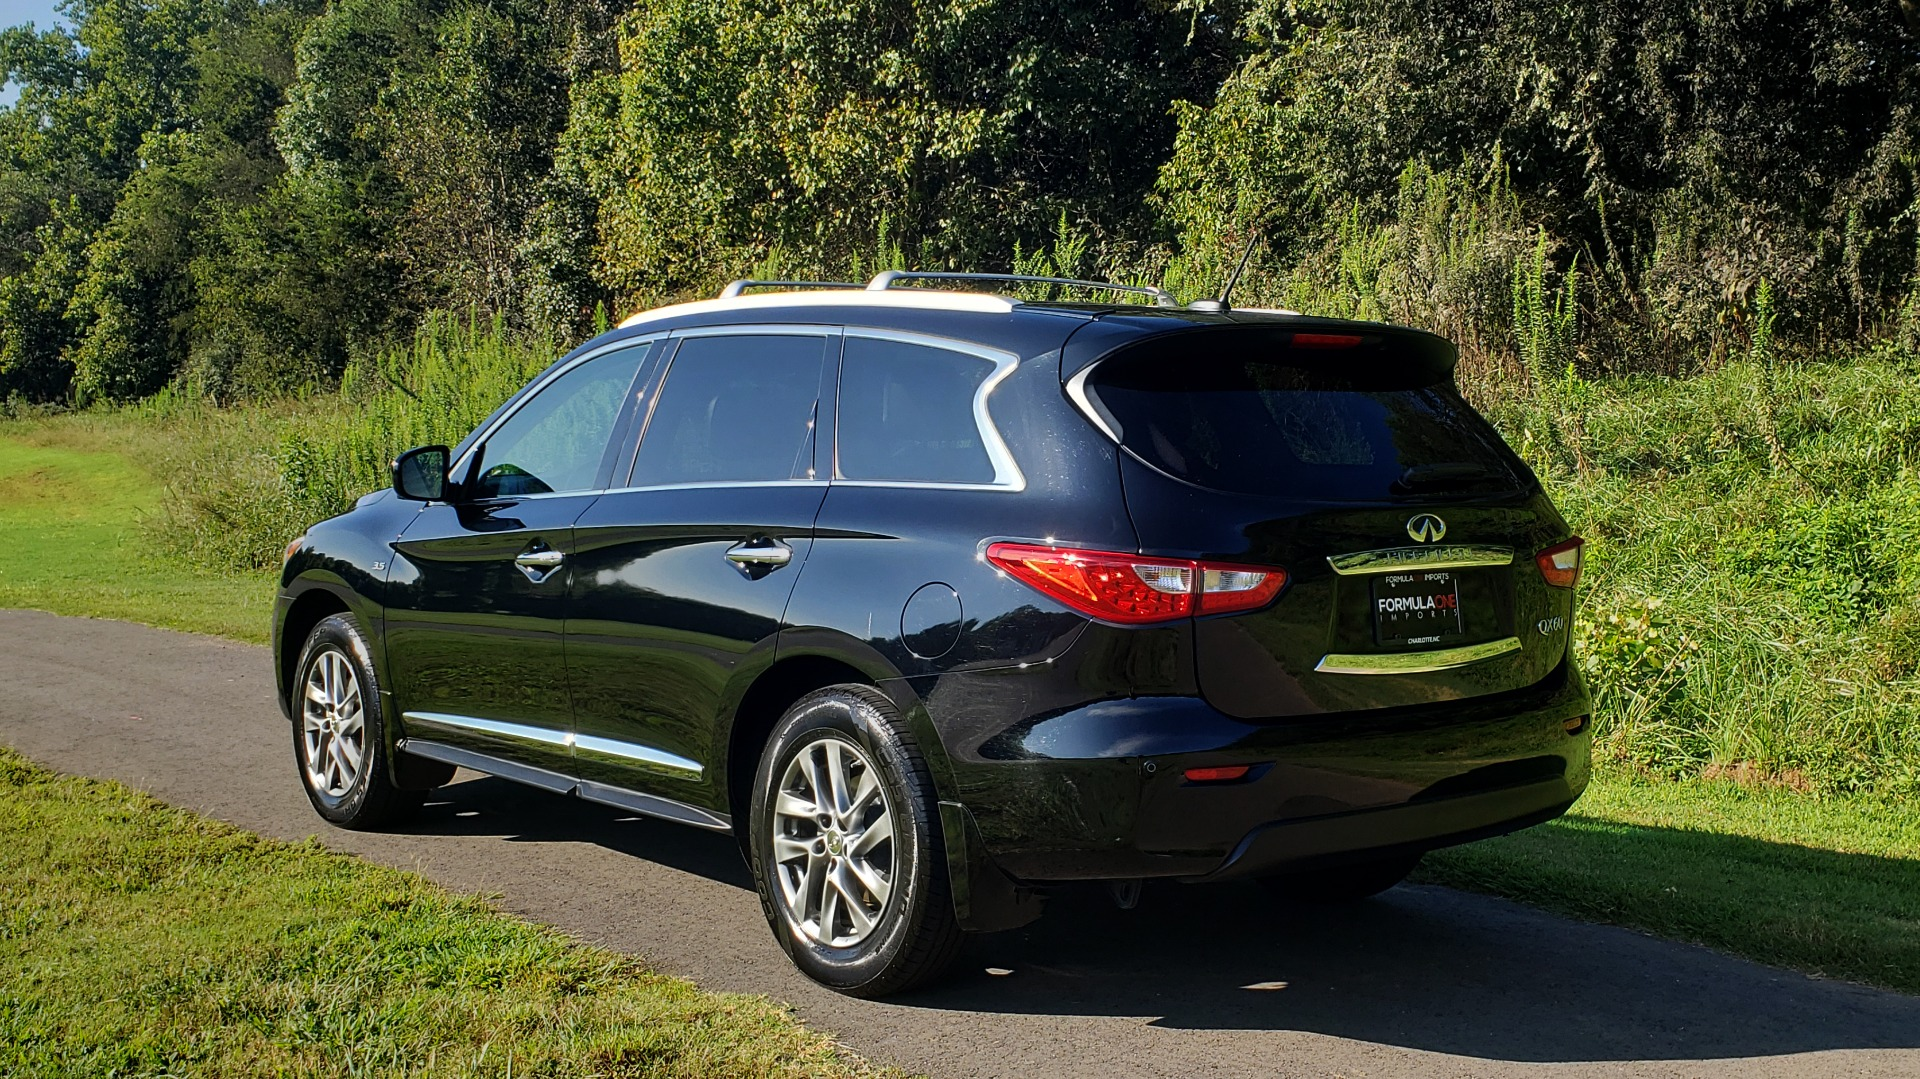 Used 2015 INFINITI QX60 AWD / PREM PLUS PKG / NAV / SUNROOF / BOSE / 3-ROW / REARVIEW for sale $19,695 at Formula Imports in Charlotte NC 28227 7